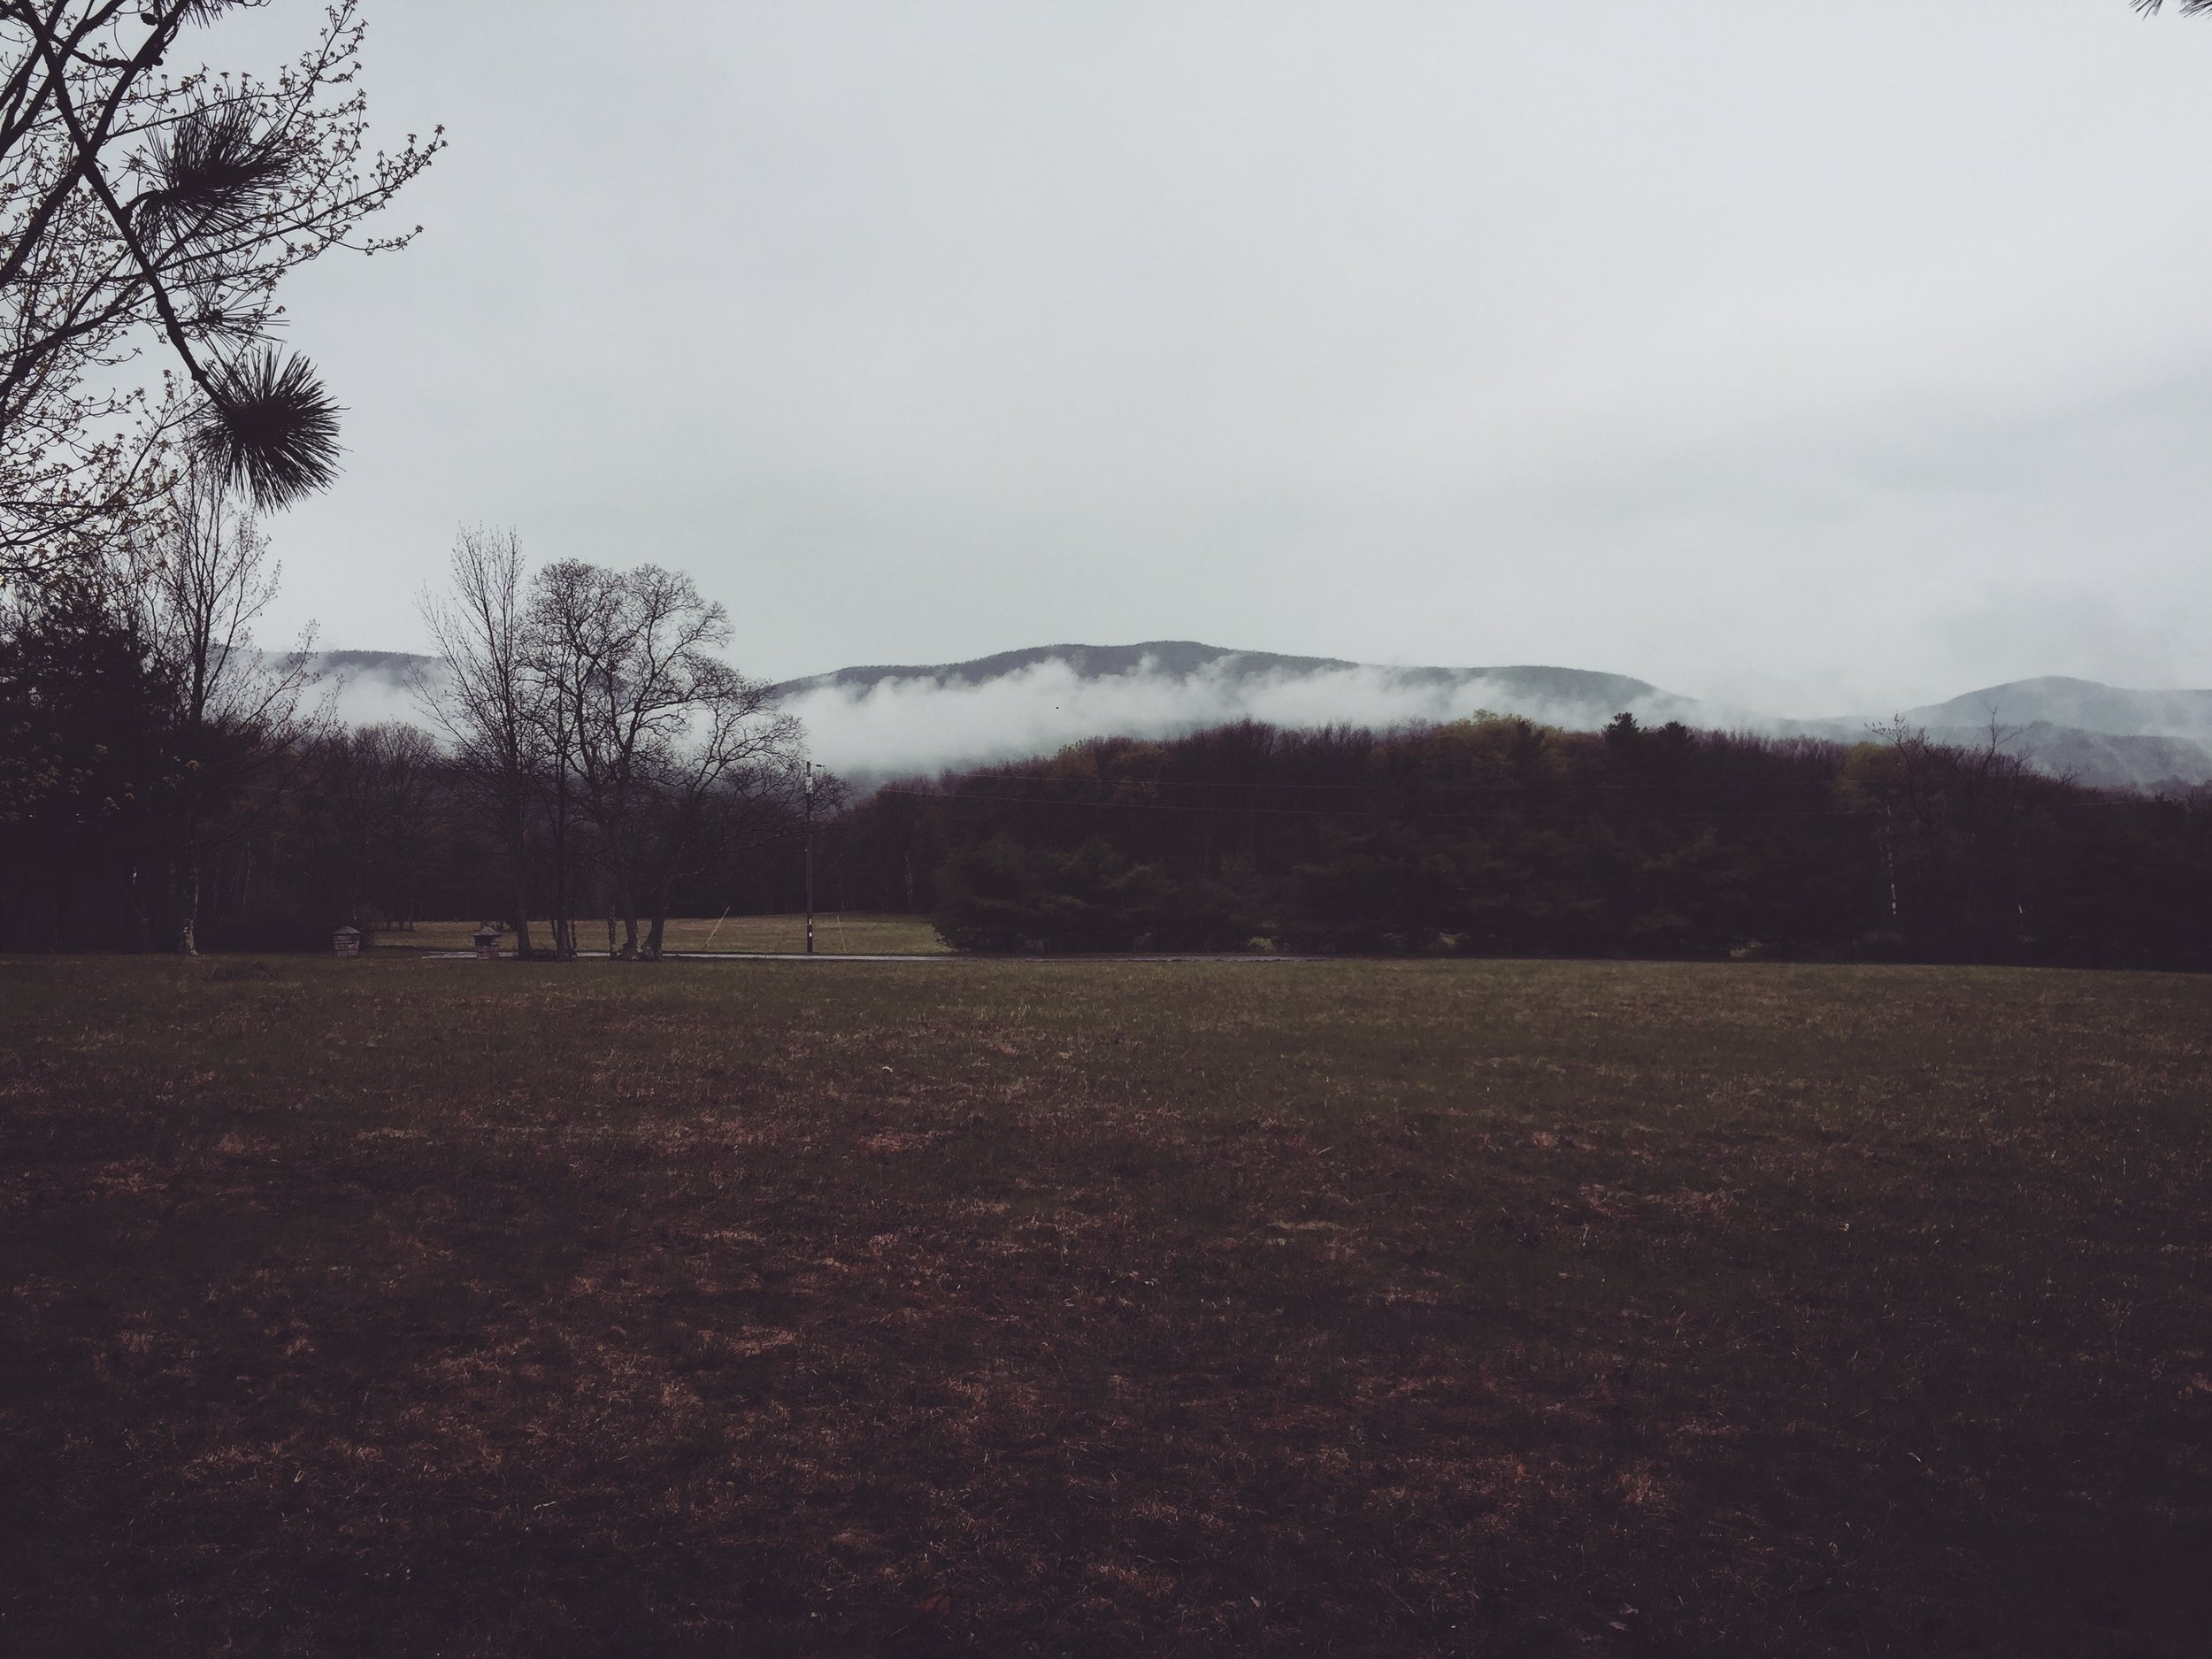 View from Grandpa's house